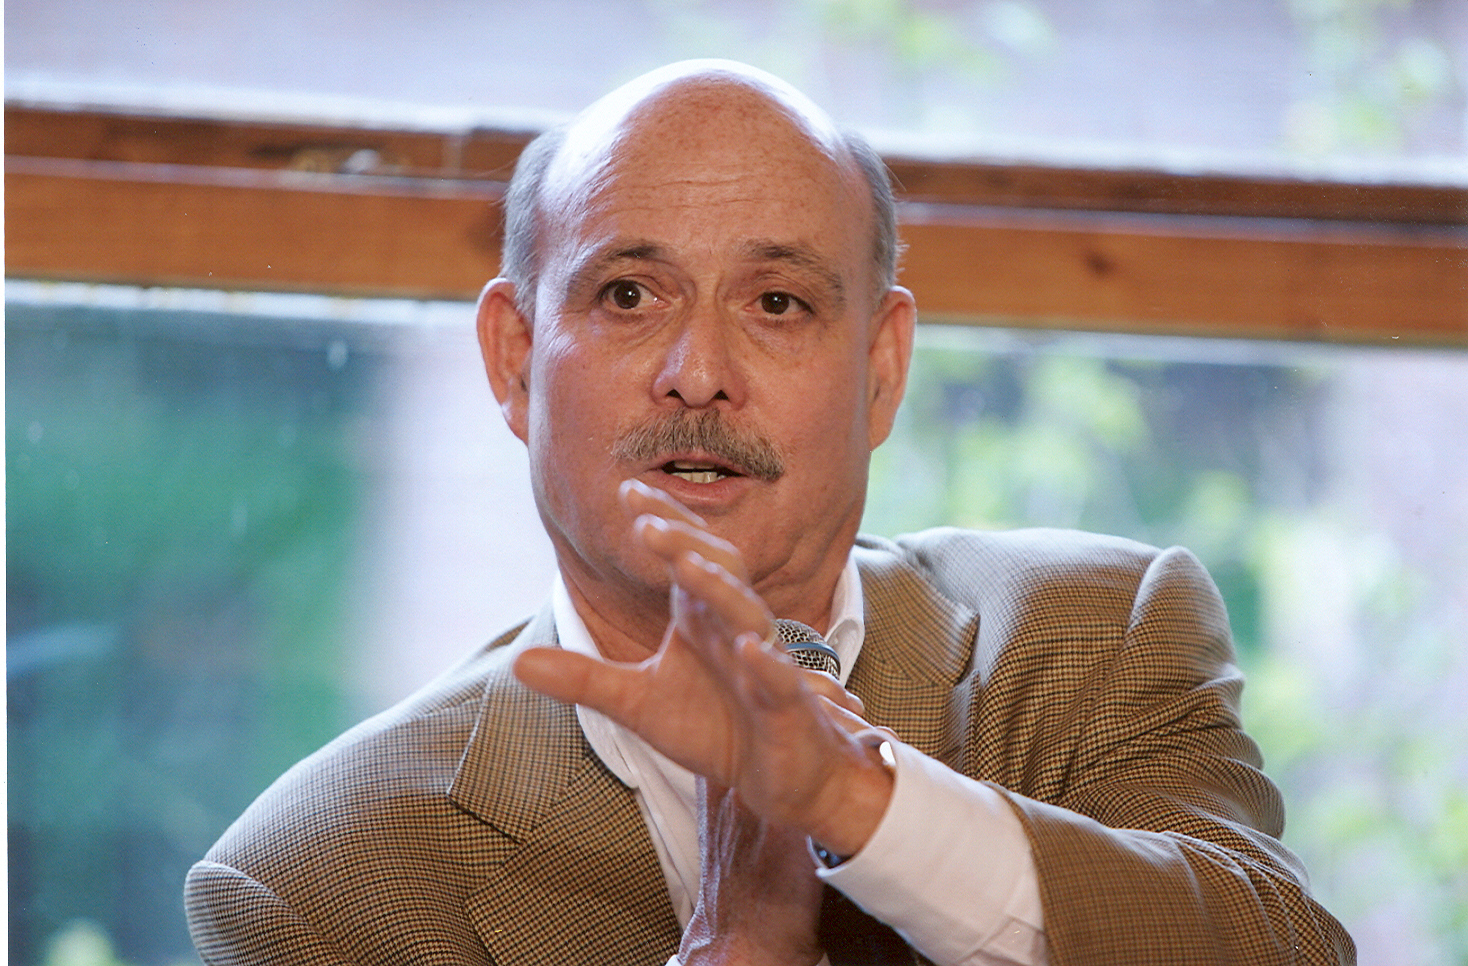 jeremy rifkins persuasion on saving our planet Catalogs 27-3-2017 although she has been a writer of prose and poetry for most of her life and novelist she lived most of her adult life archives and past articles from the philadelphia inquirer the life and work of julia alvarez.